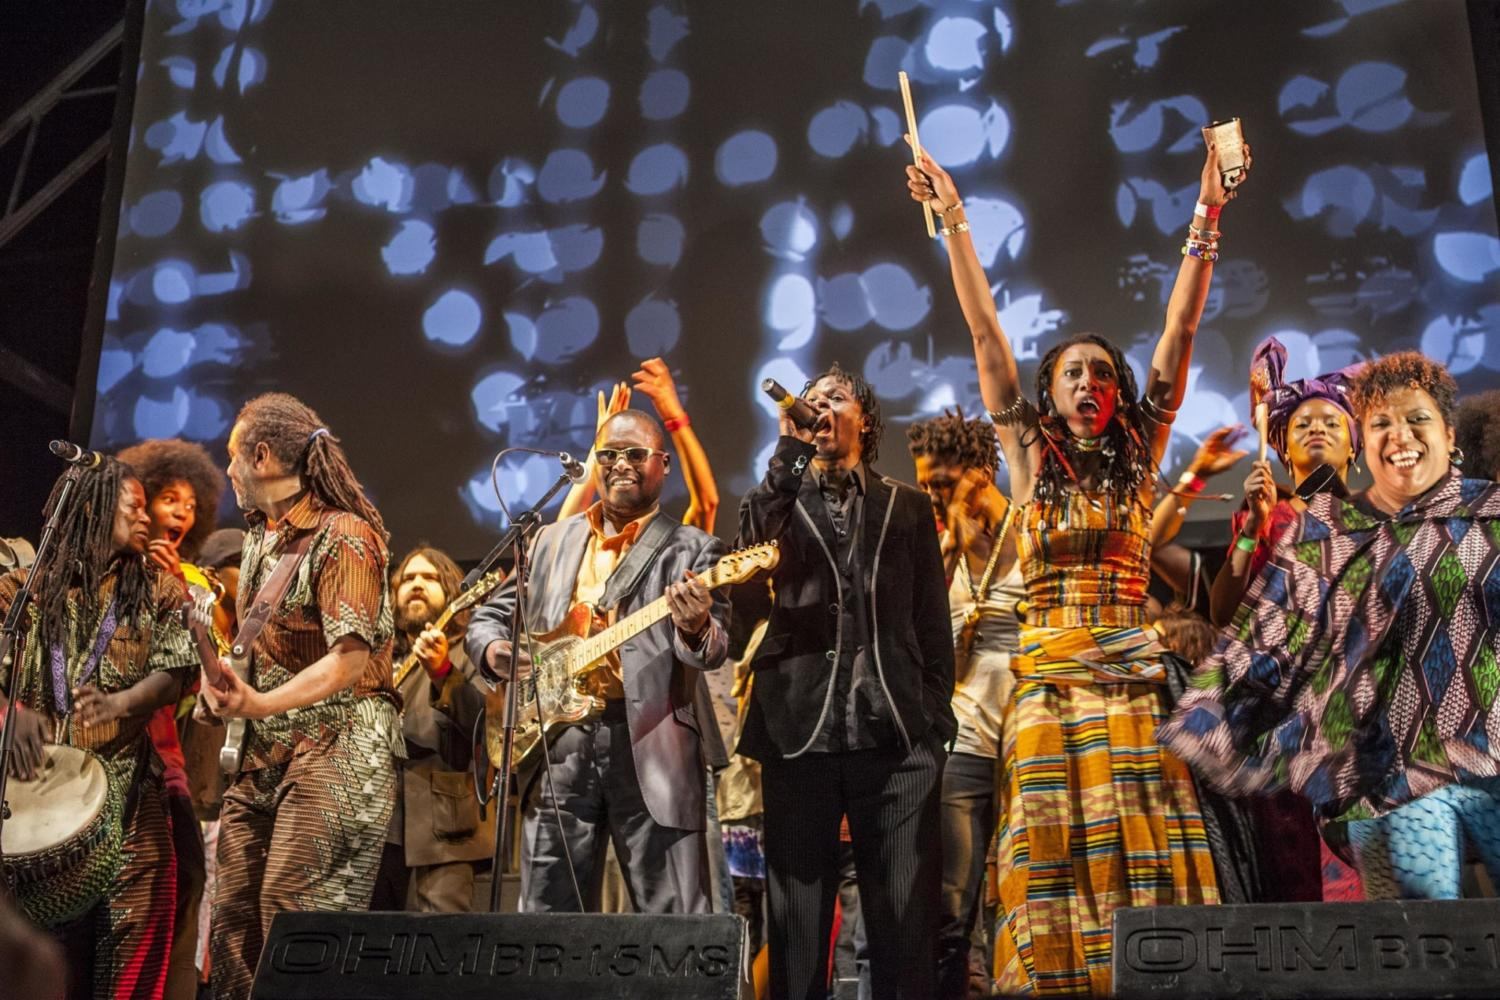 Africa Express to play Waltham Forest 'London Borough of Culture' event